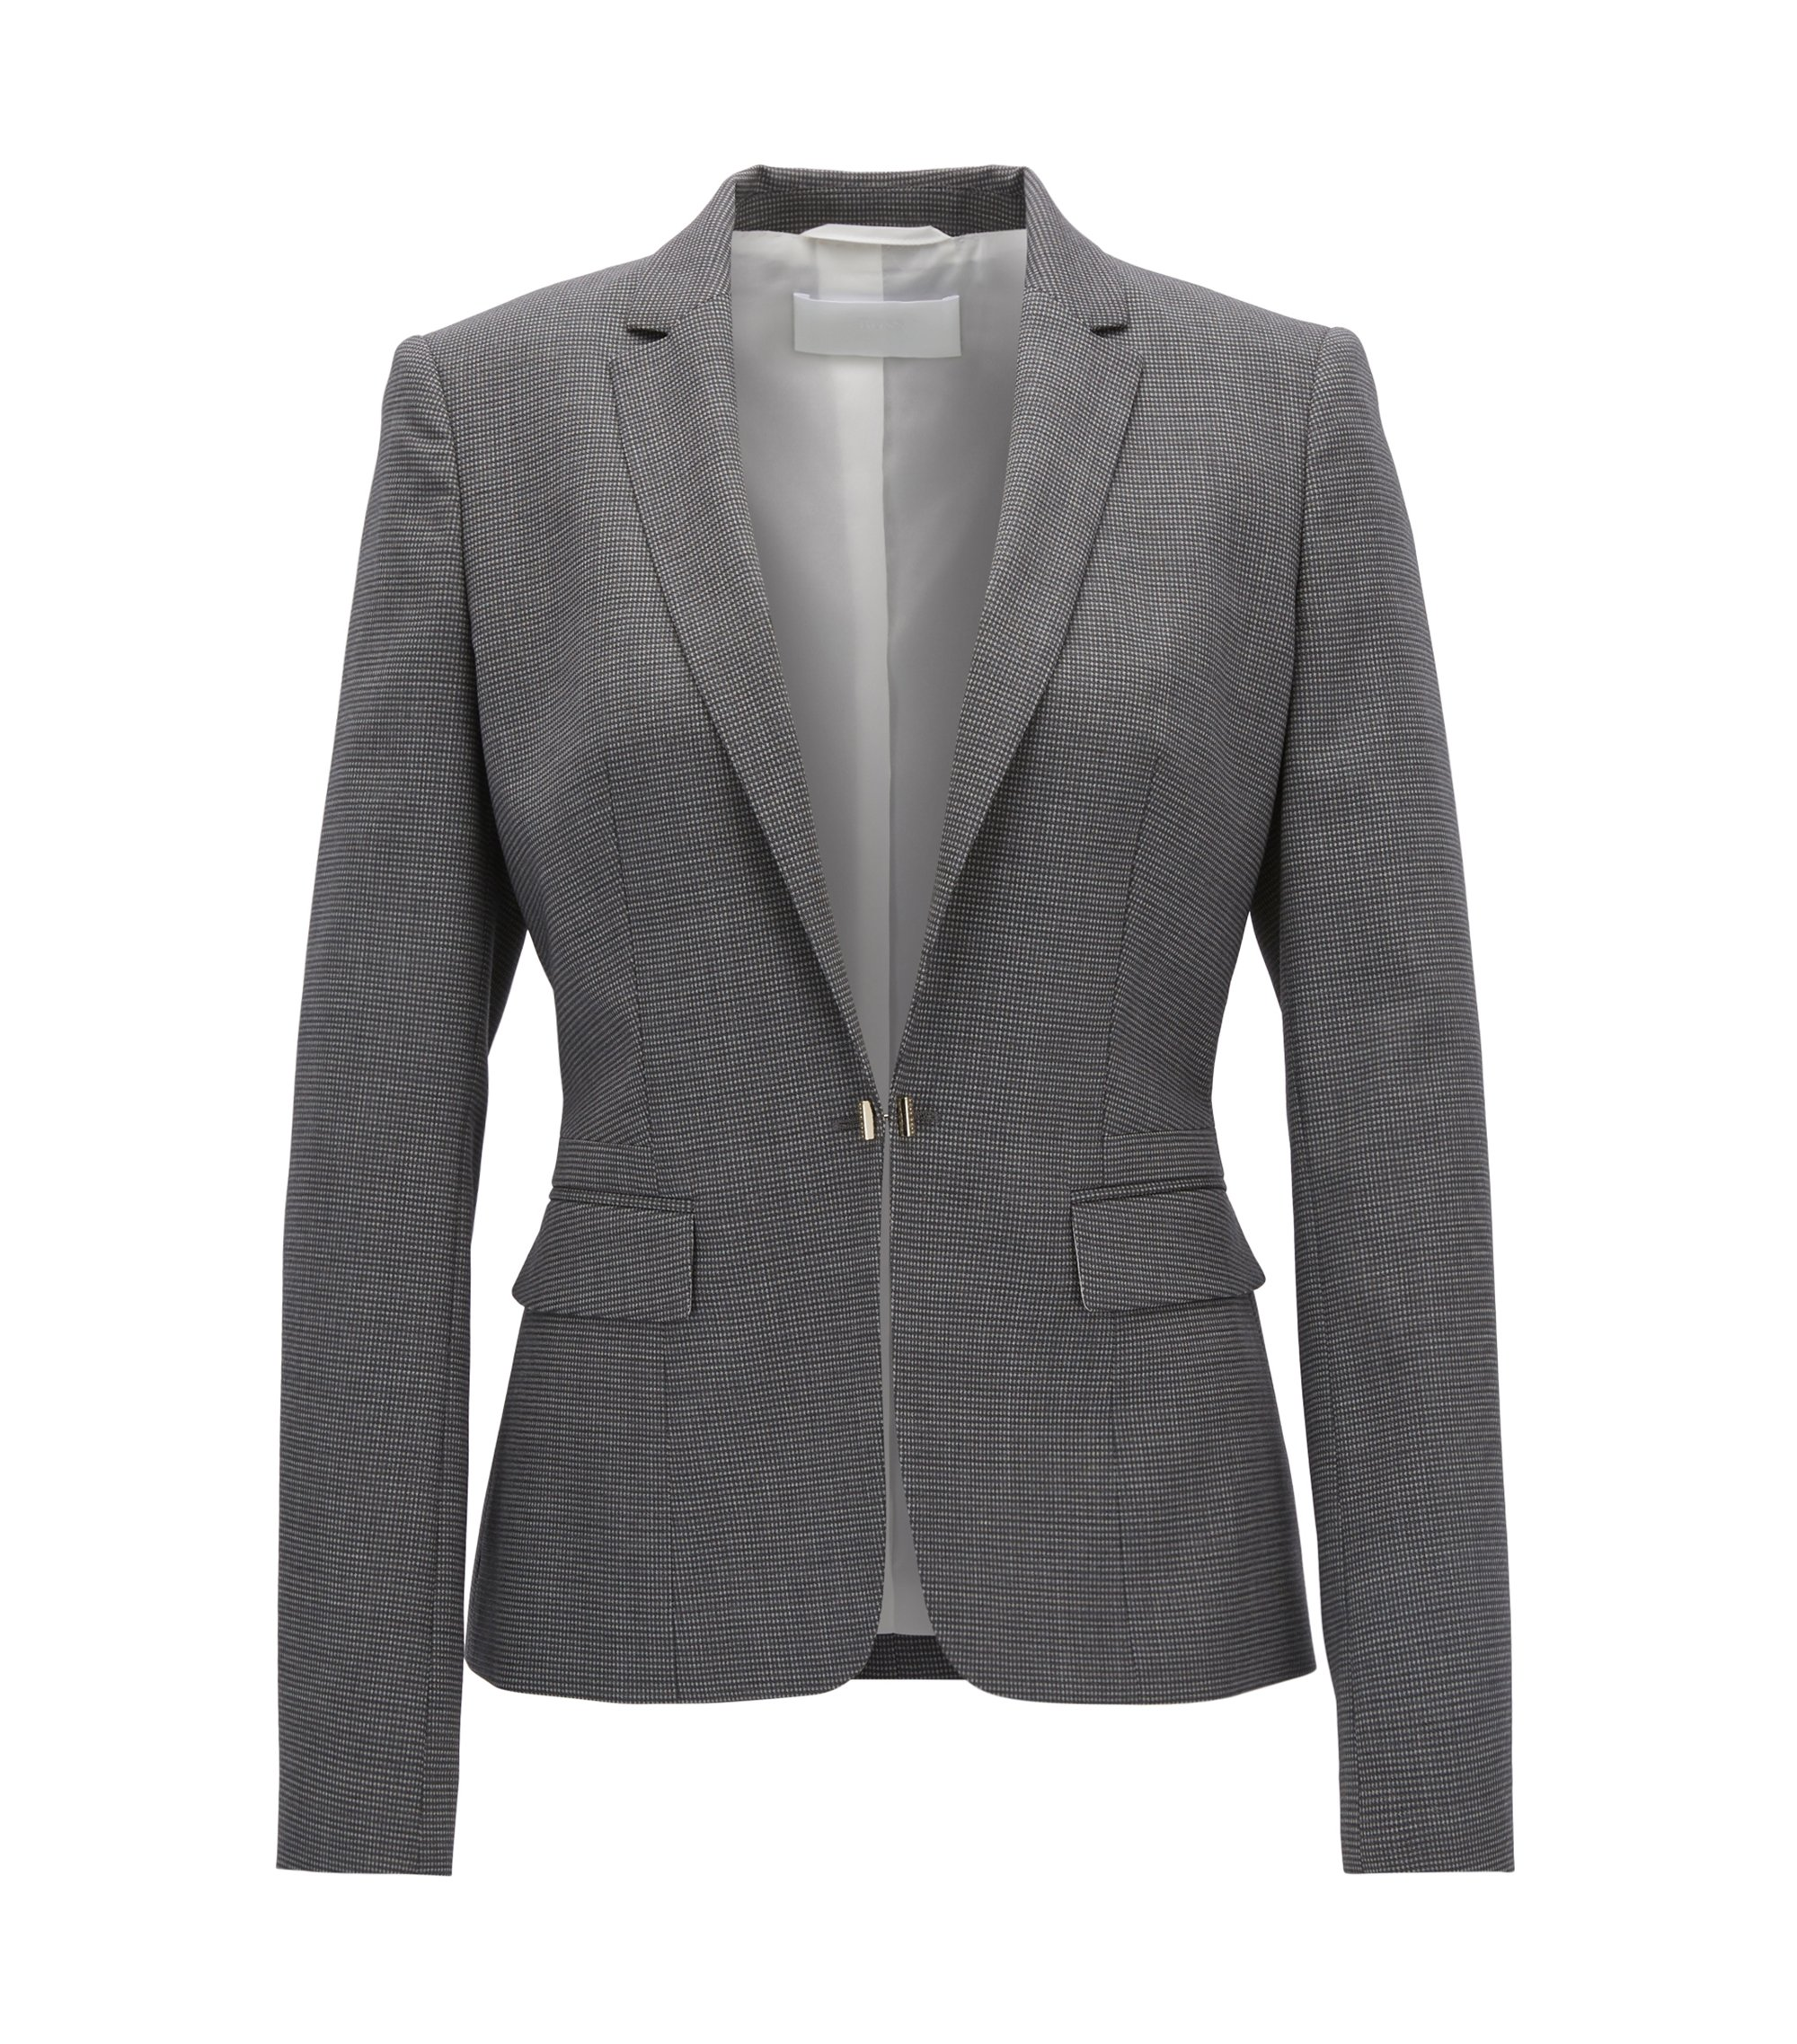 Regular-fit jacket in patterned stretch wool, Patterned